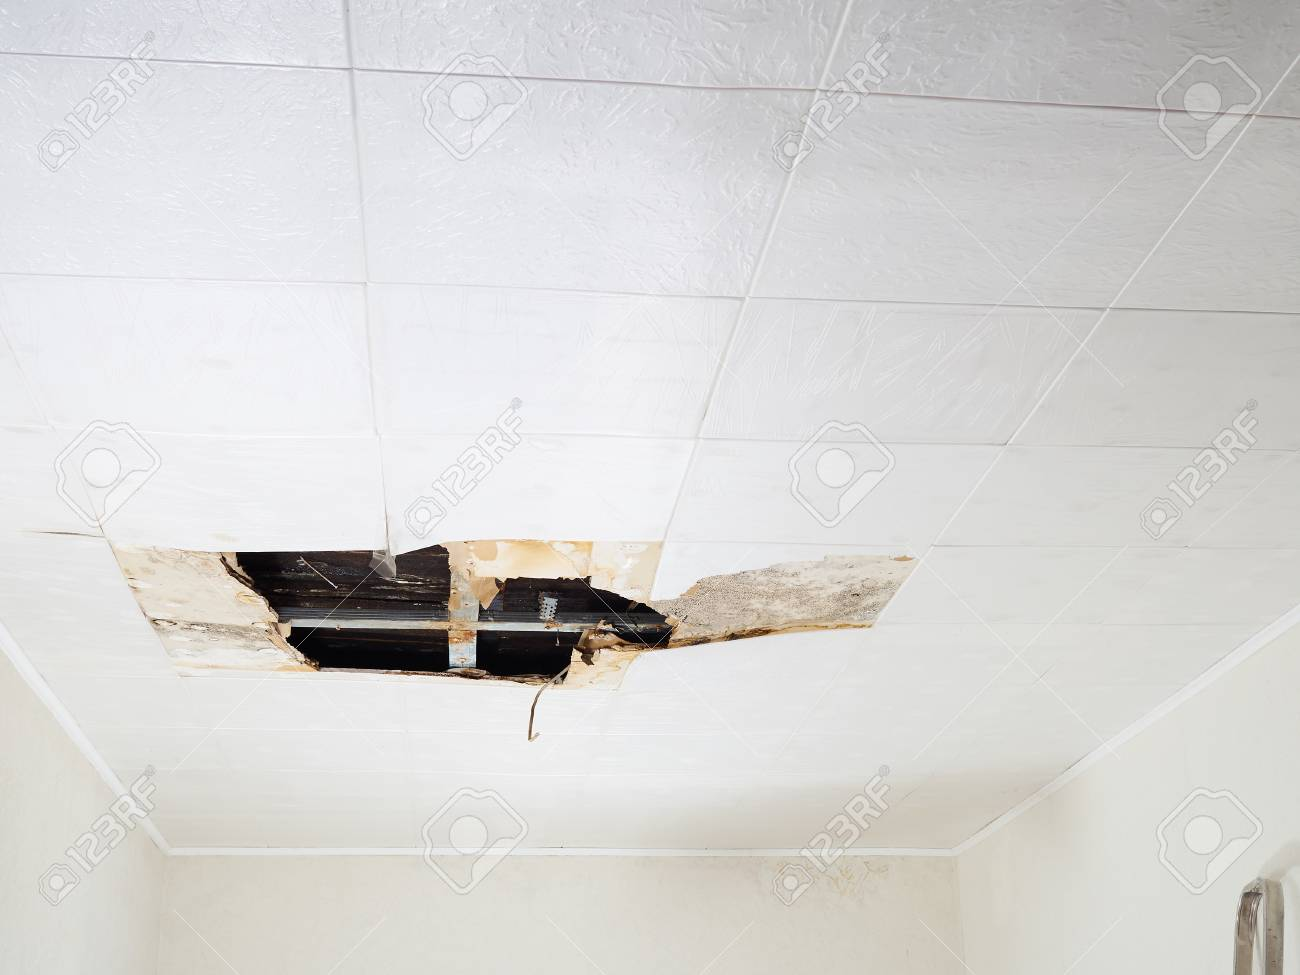 Ceiling panels damaged huge hole in roof from rainwater leakage.Water damaged ceiling . - 89869843